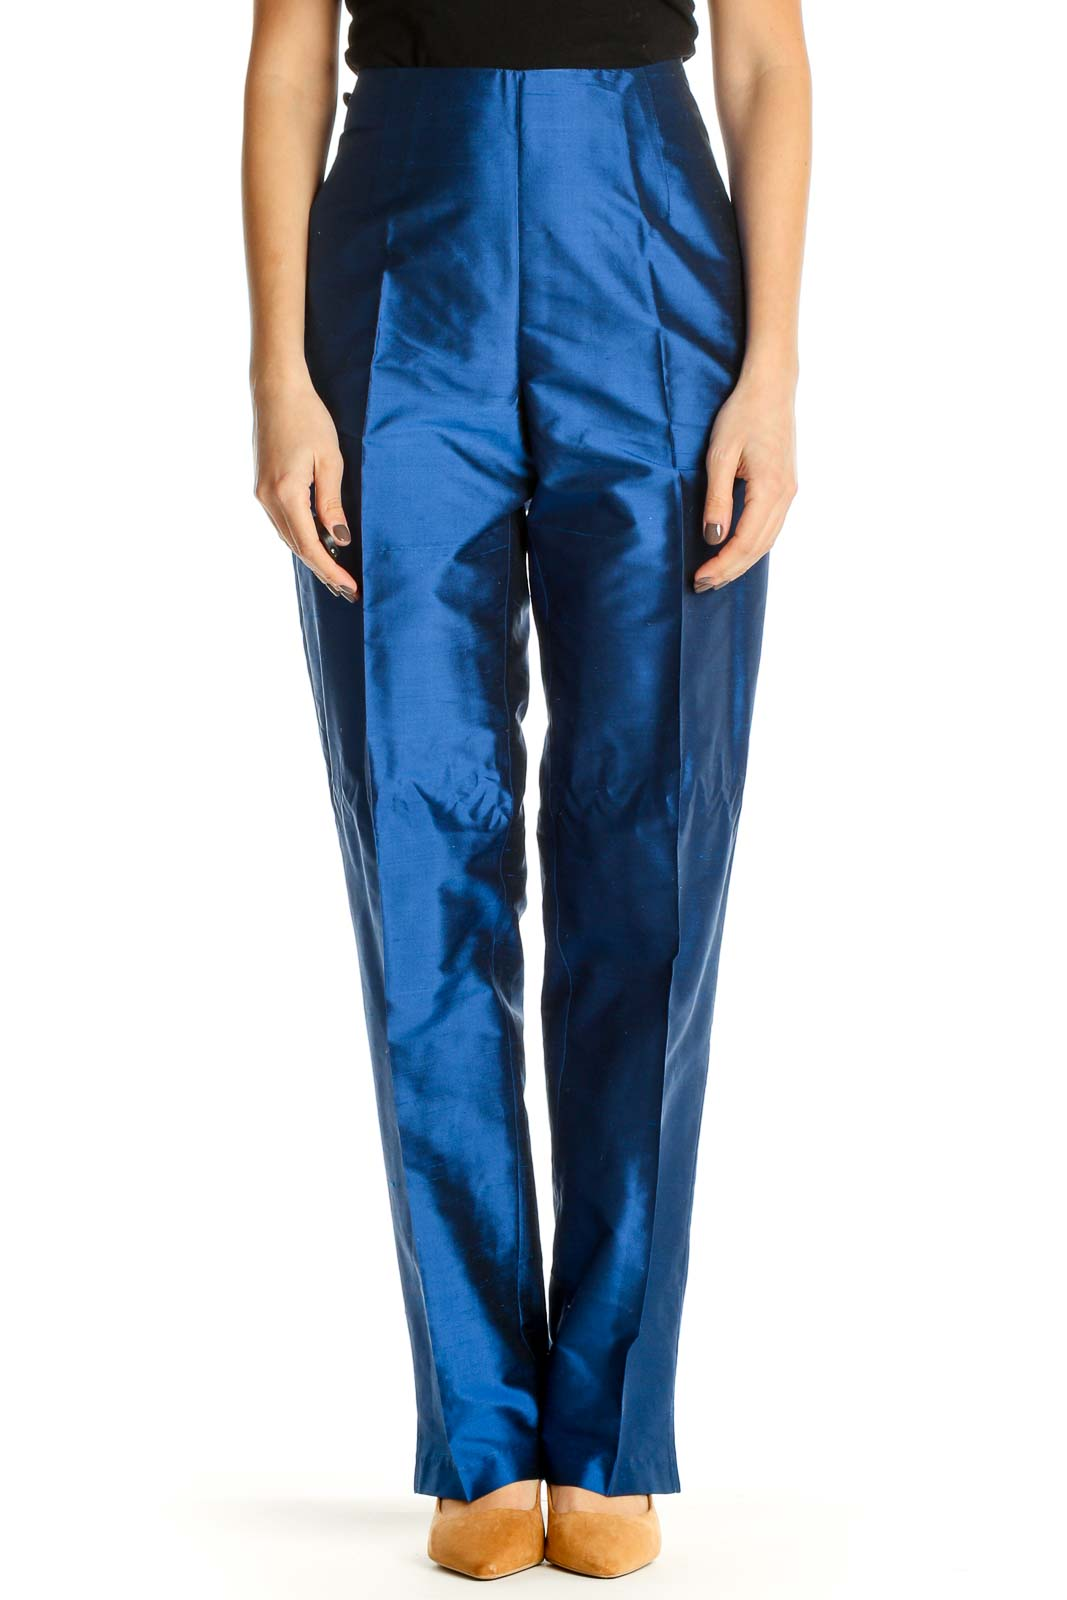 Blue Textured Party Wear Trousers Front